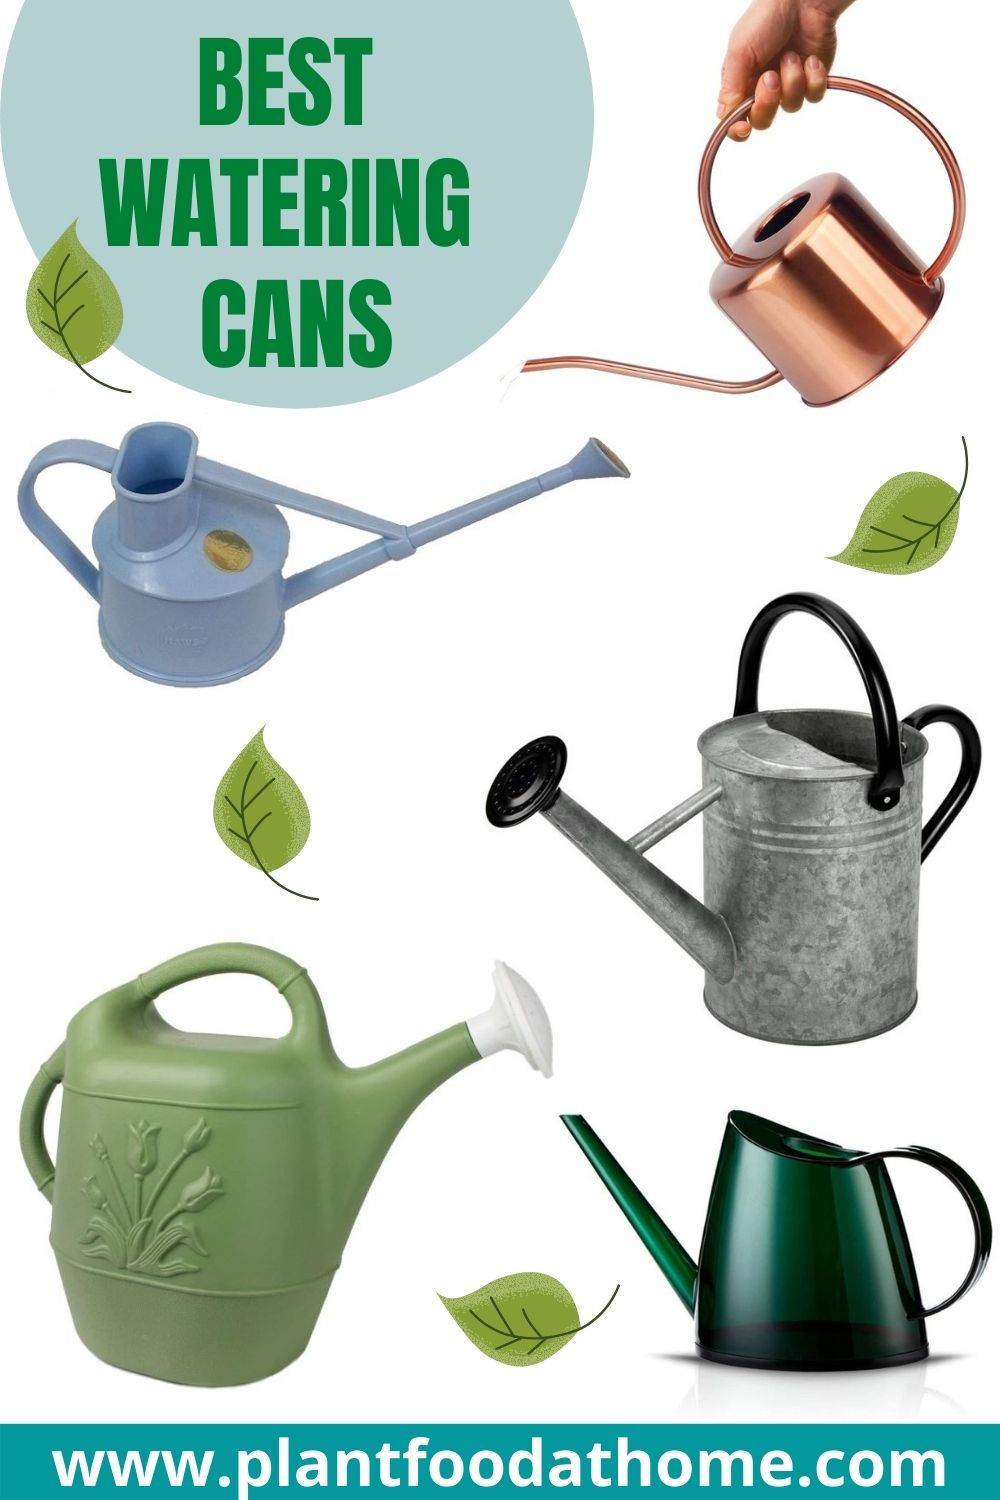 The Best Watering Cans